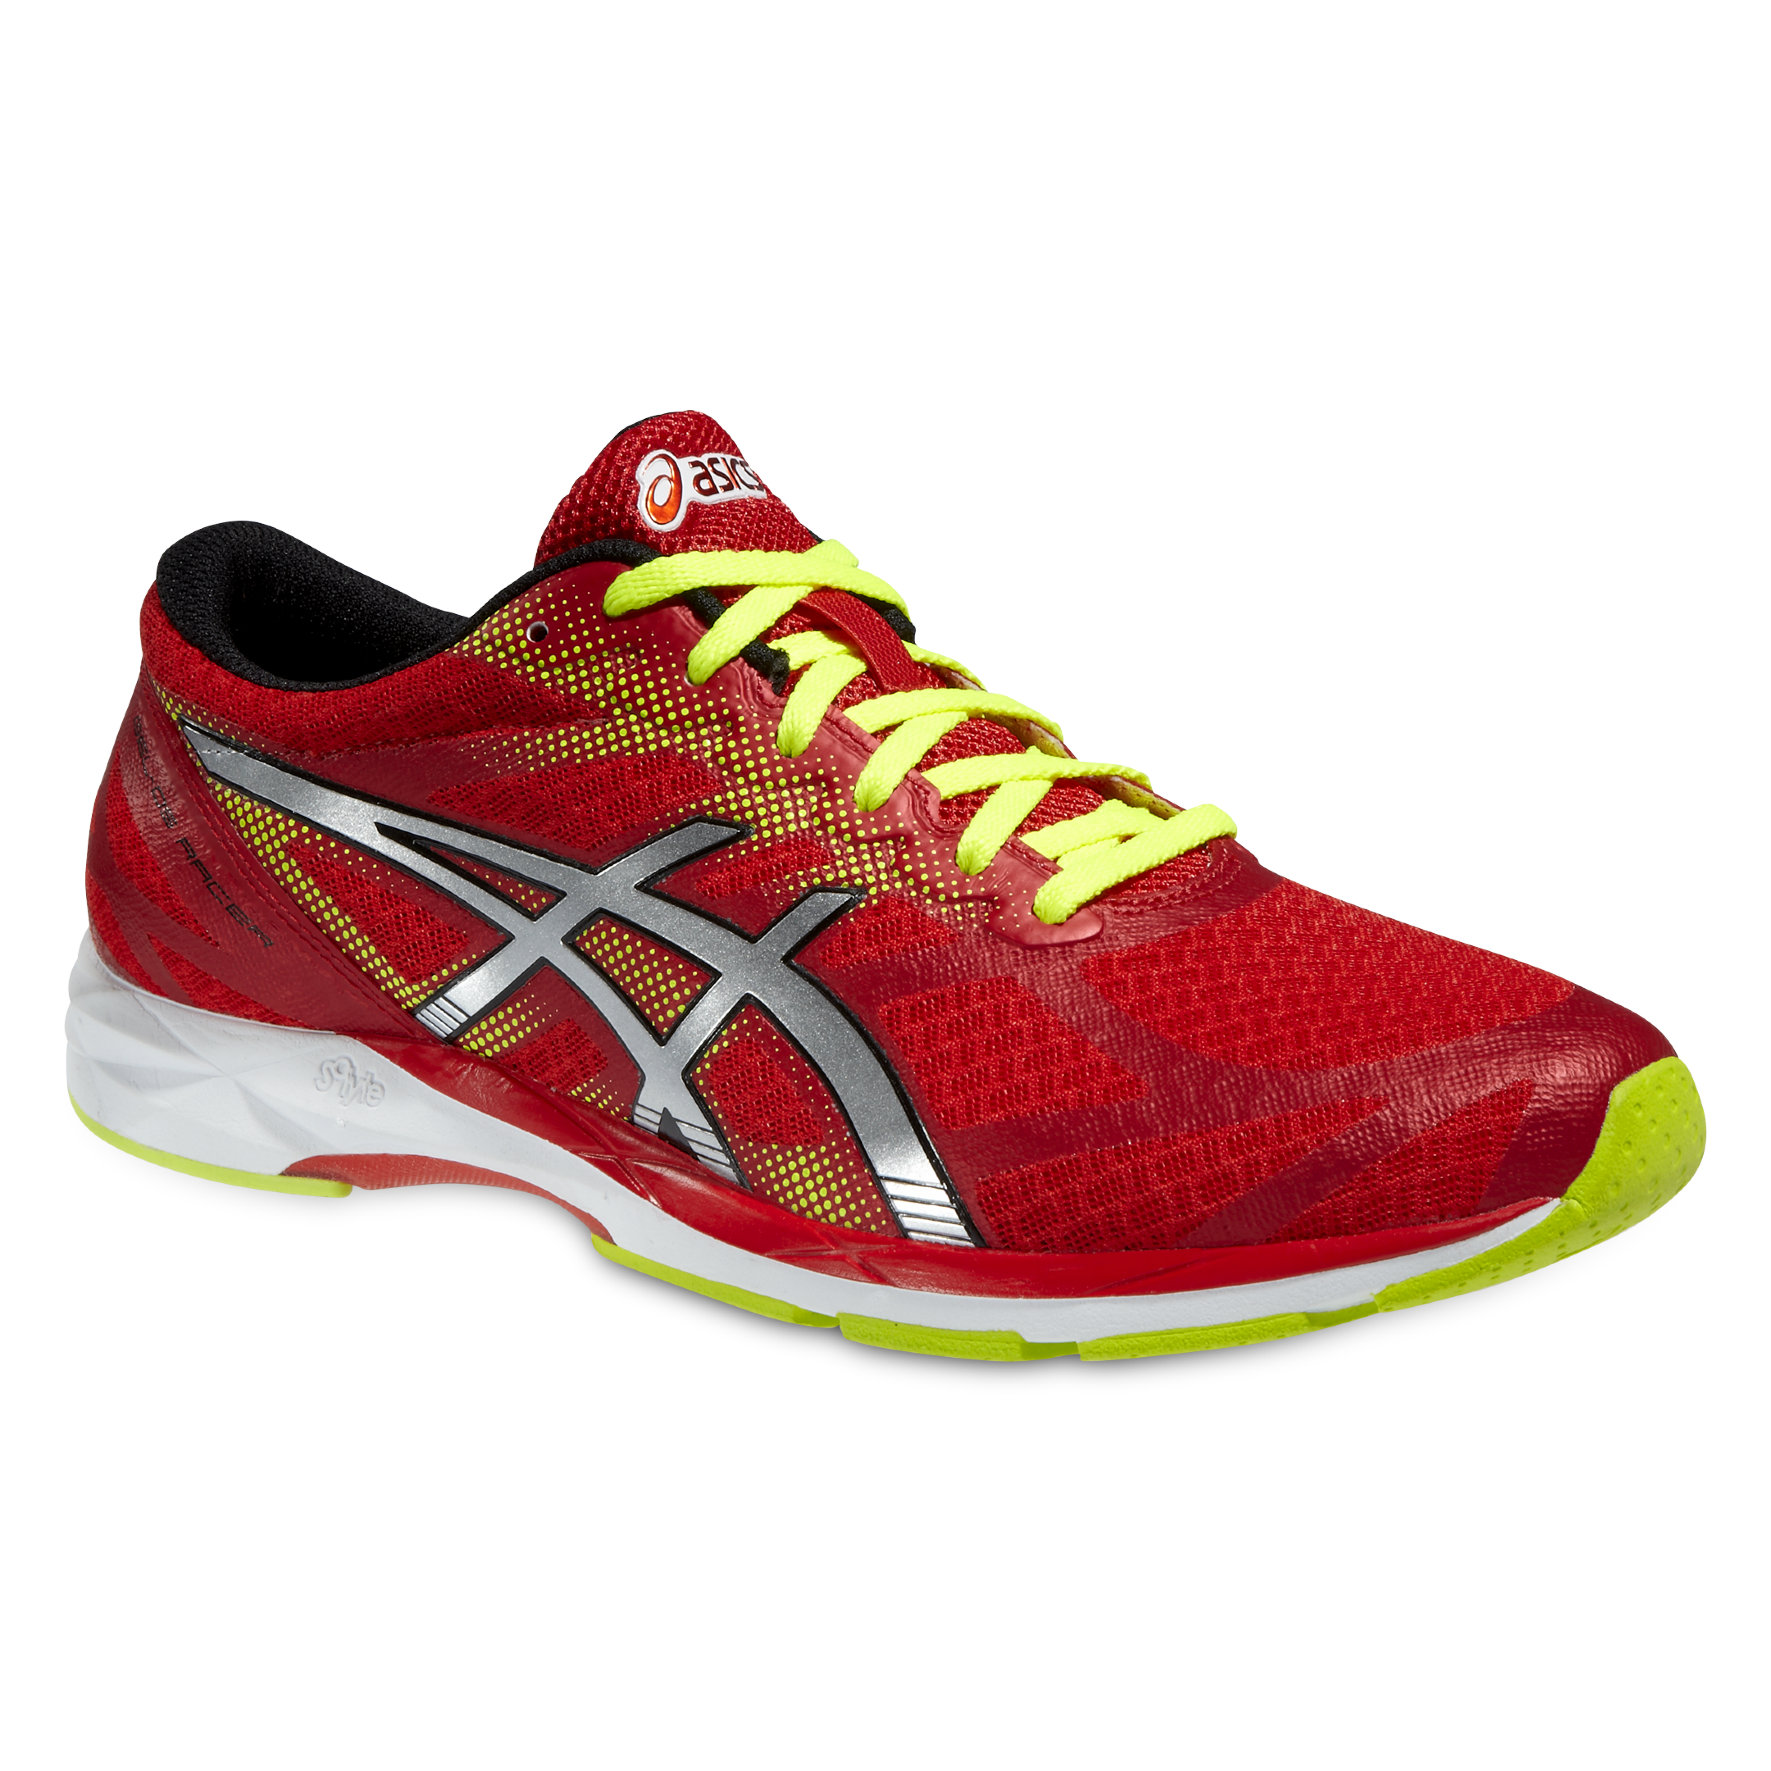 Asics Gel DS Racer 10 in Rot, Gelb